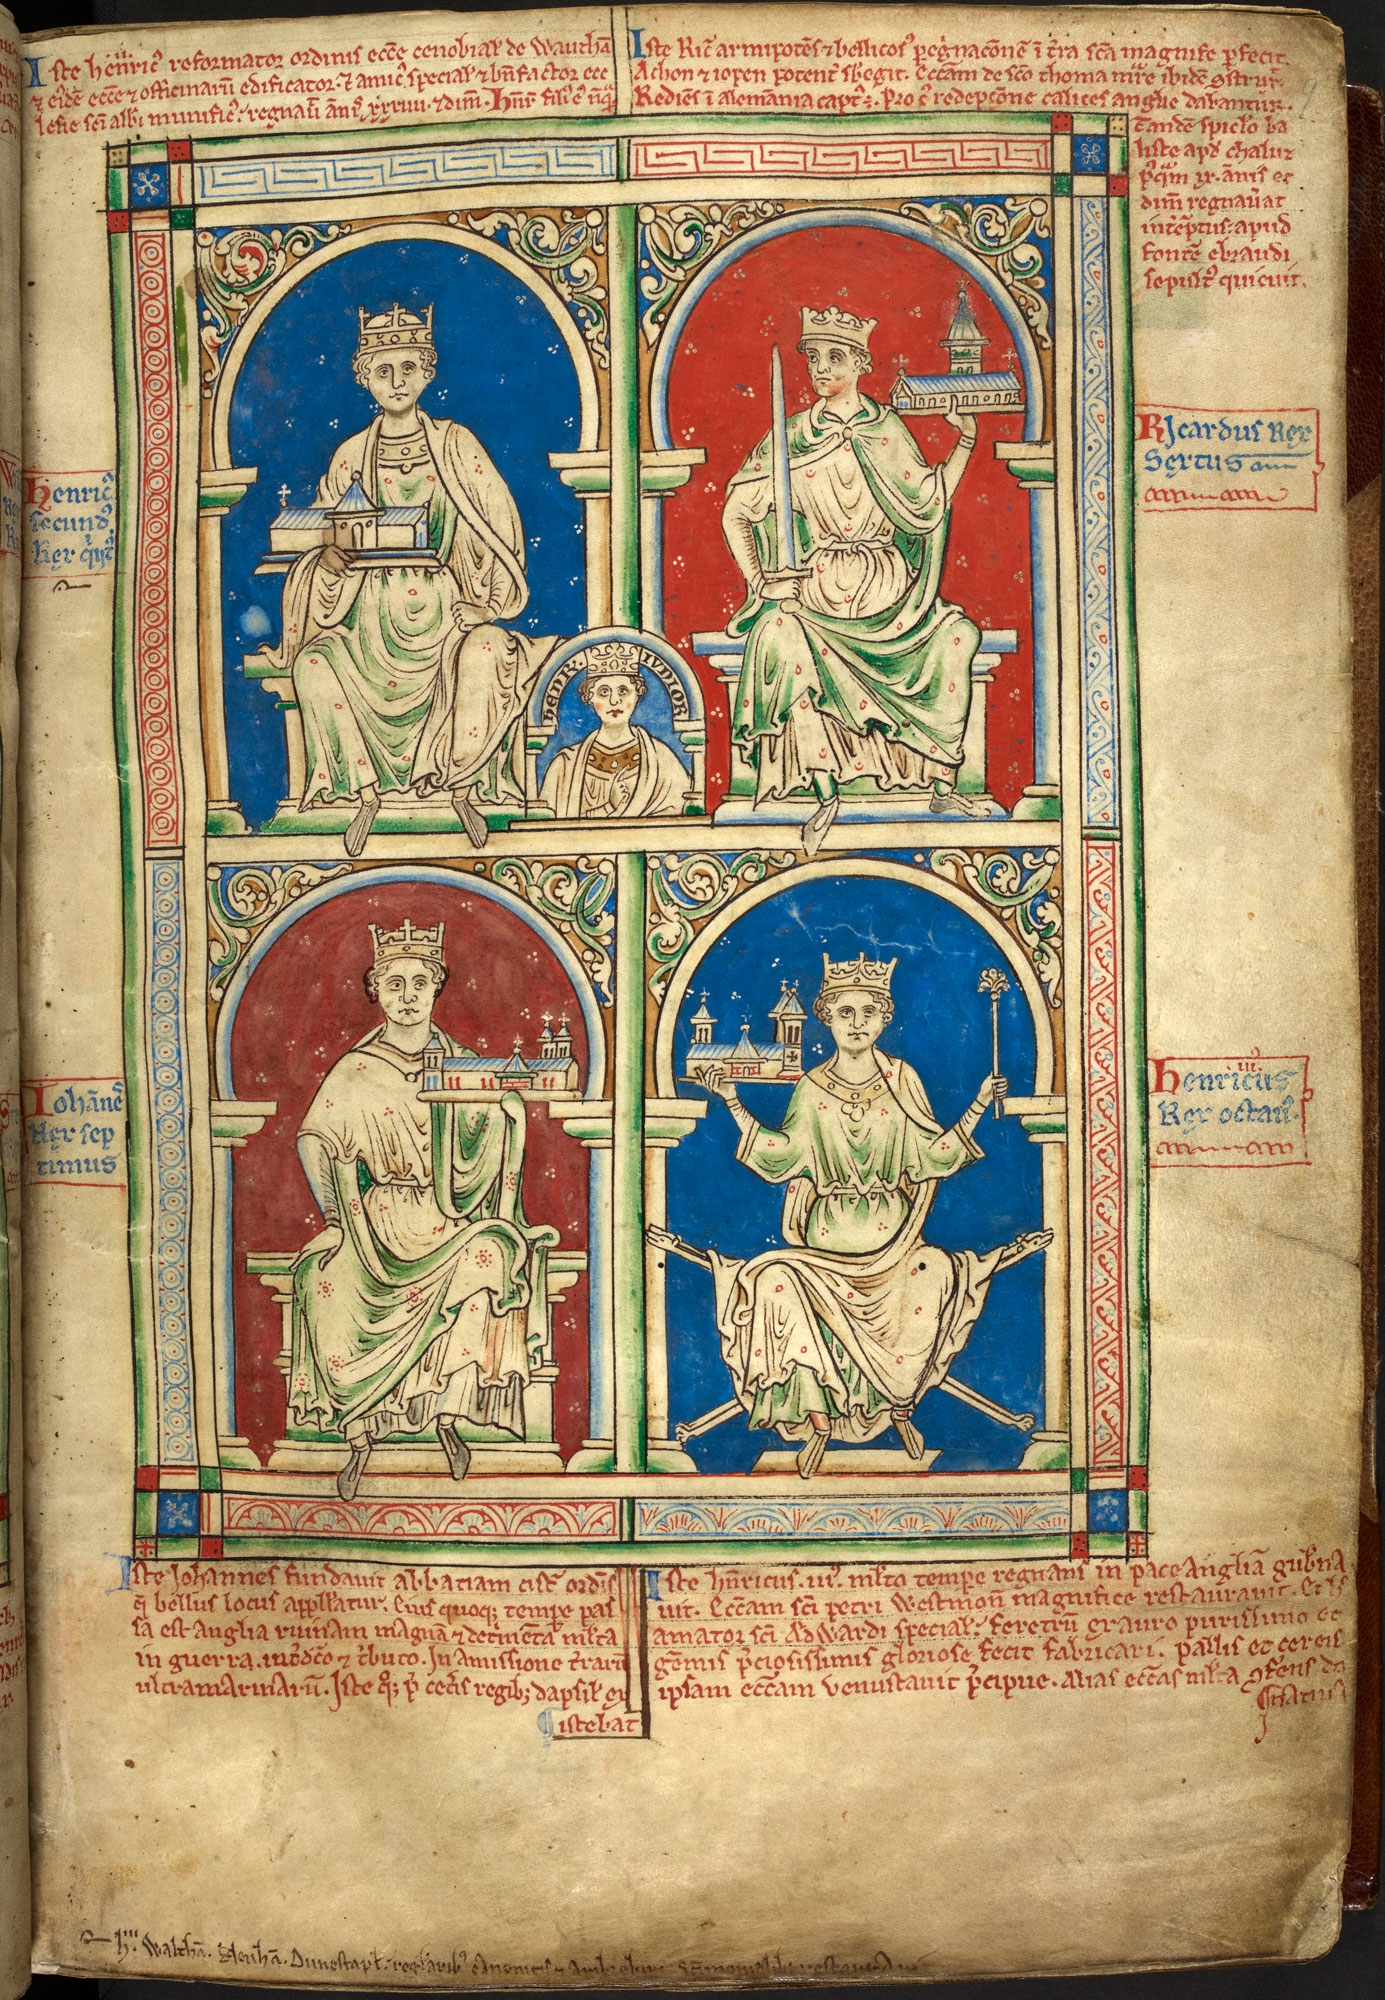 Portrait of King John from Matthew Paris's Historia Anglorum